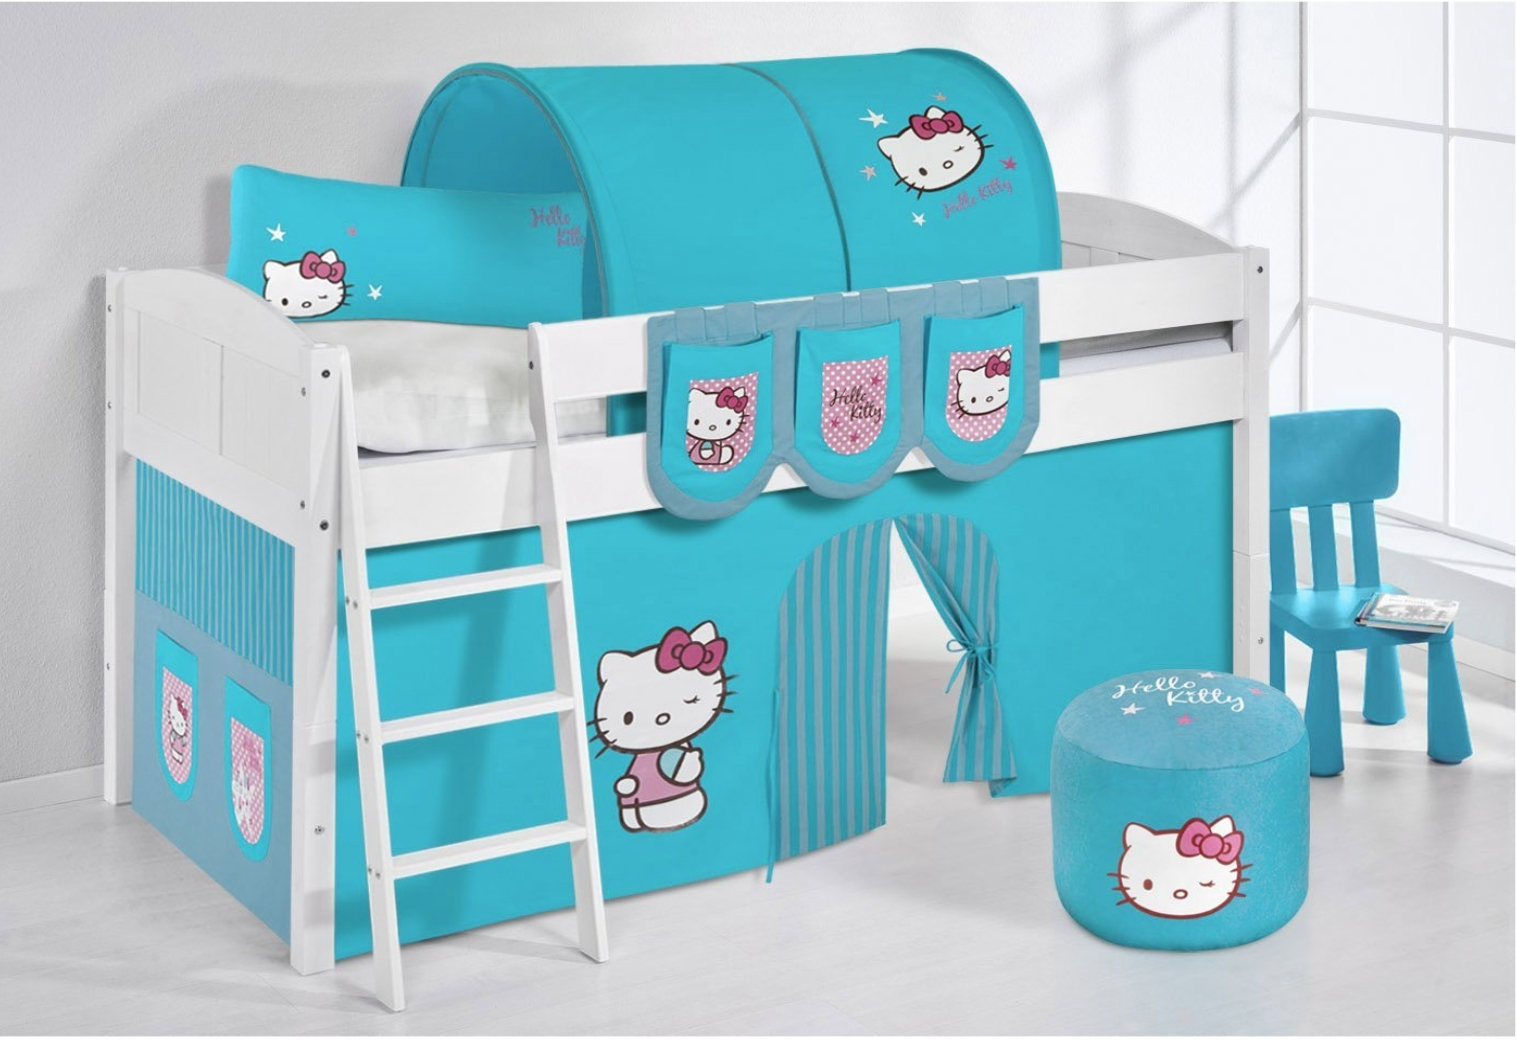 lit sur lev blanc laqu rideau hello kitty turquoise 90x200cm sommier sans sommier sans. Black Bedroom Furniture Sets. Home Design Ideas